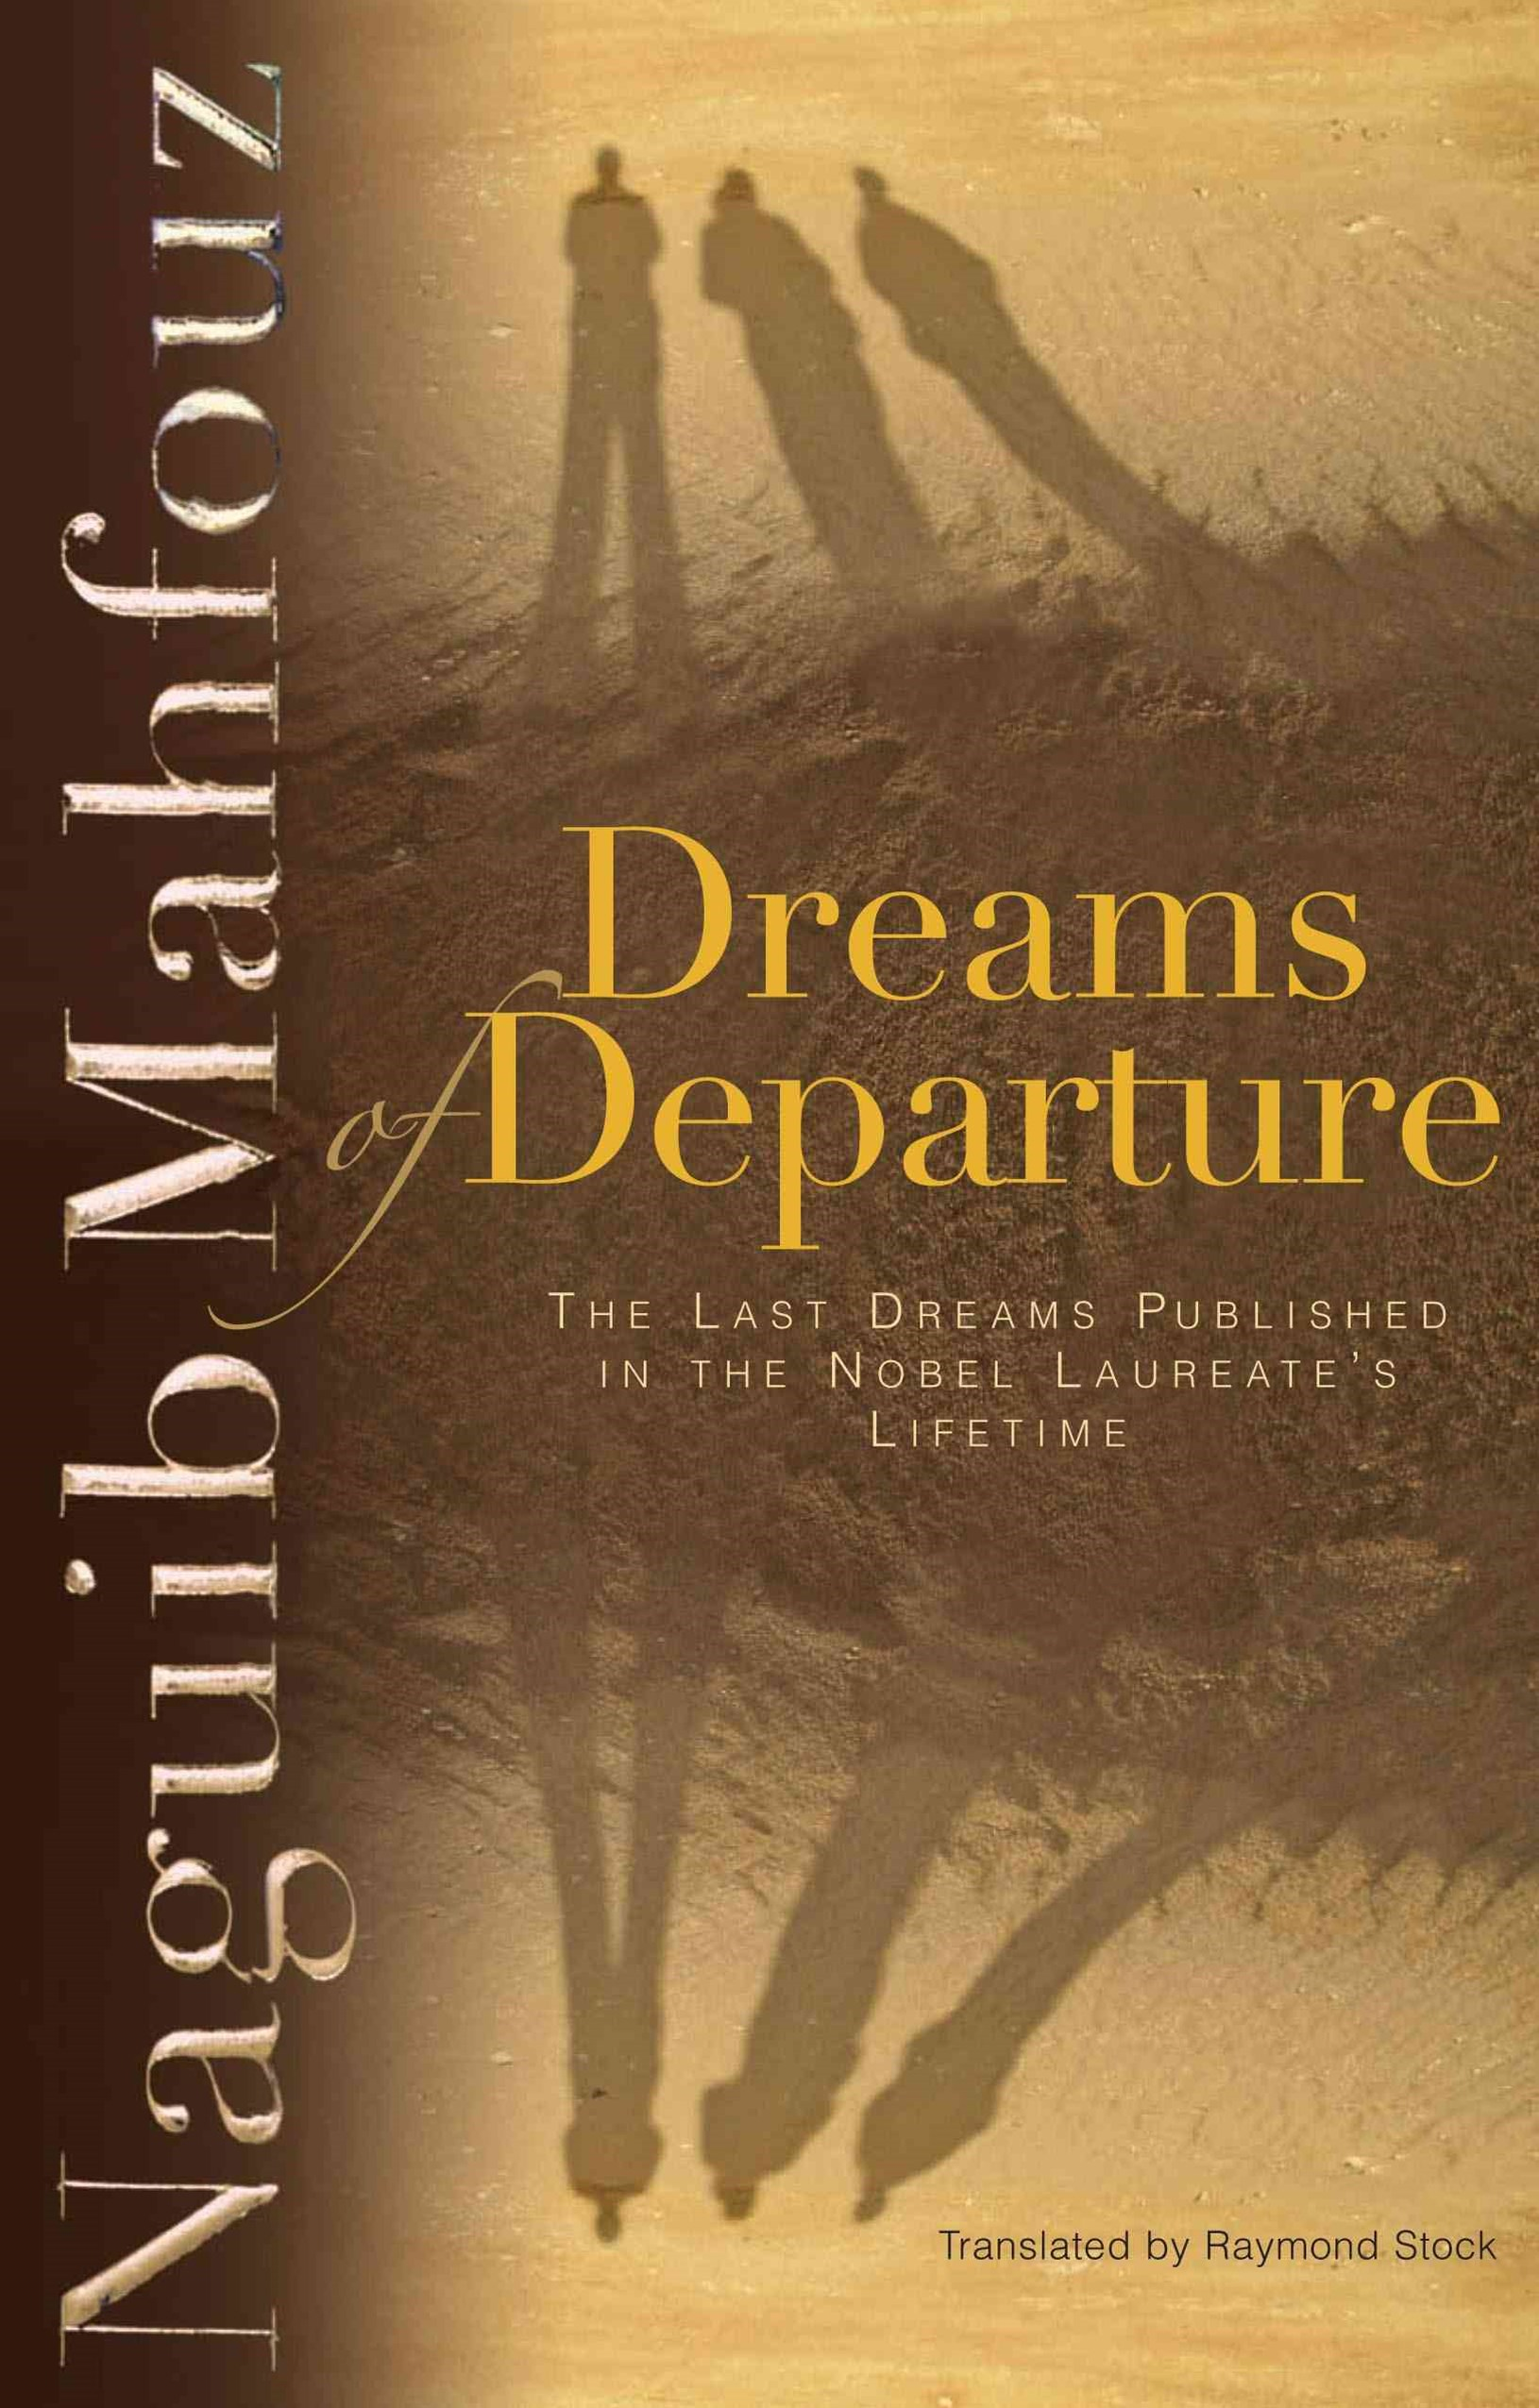 Dreams of Departure